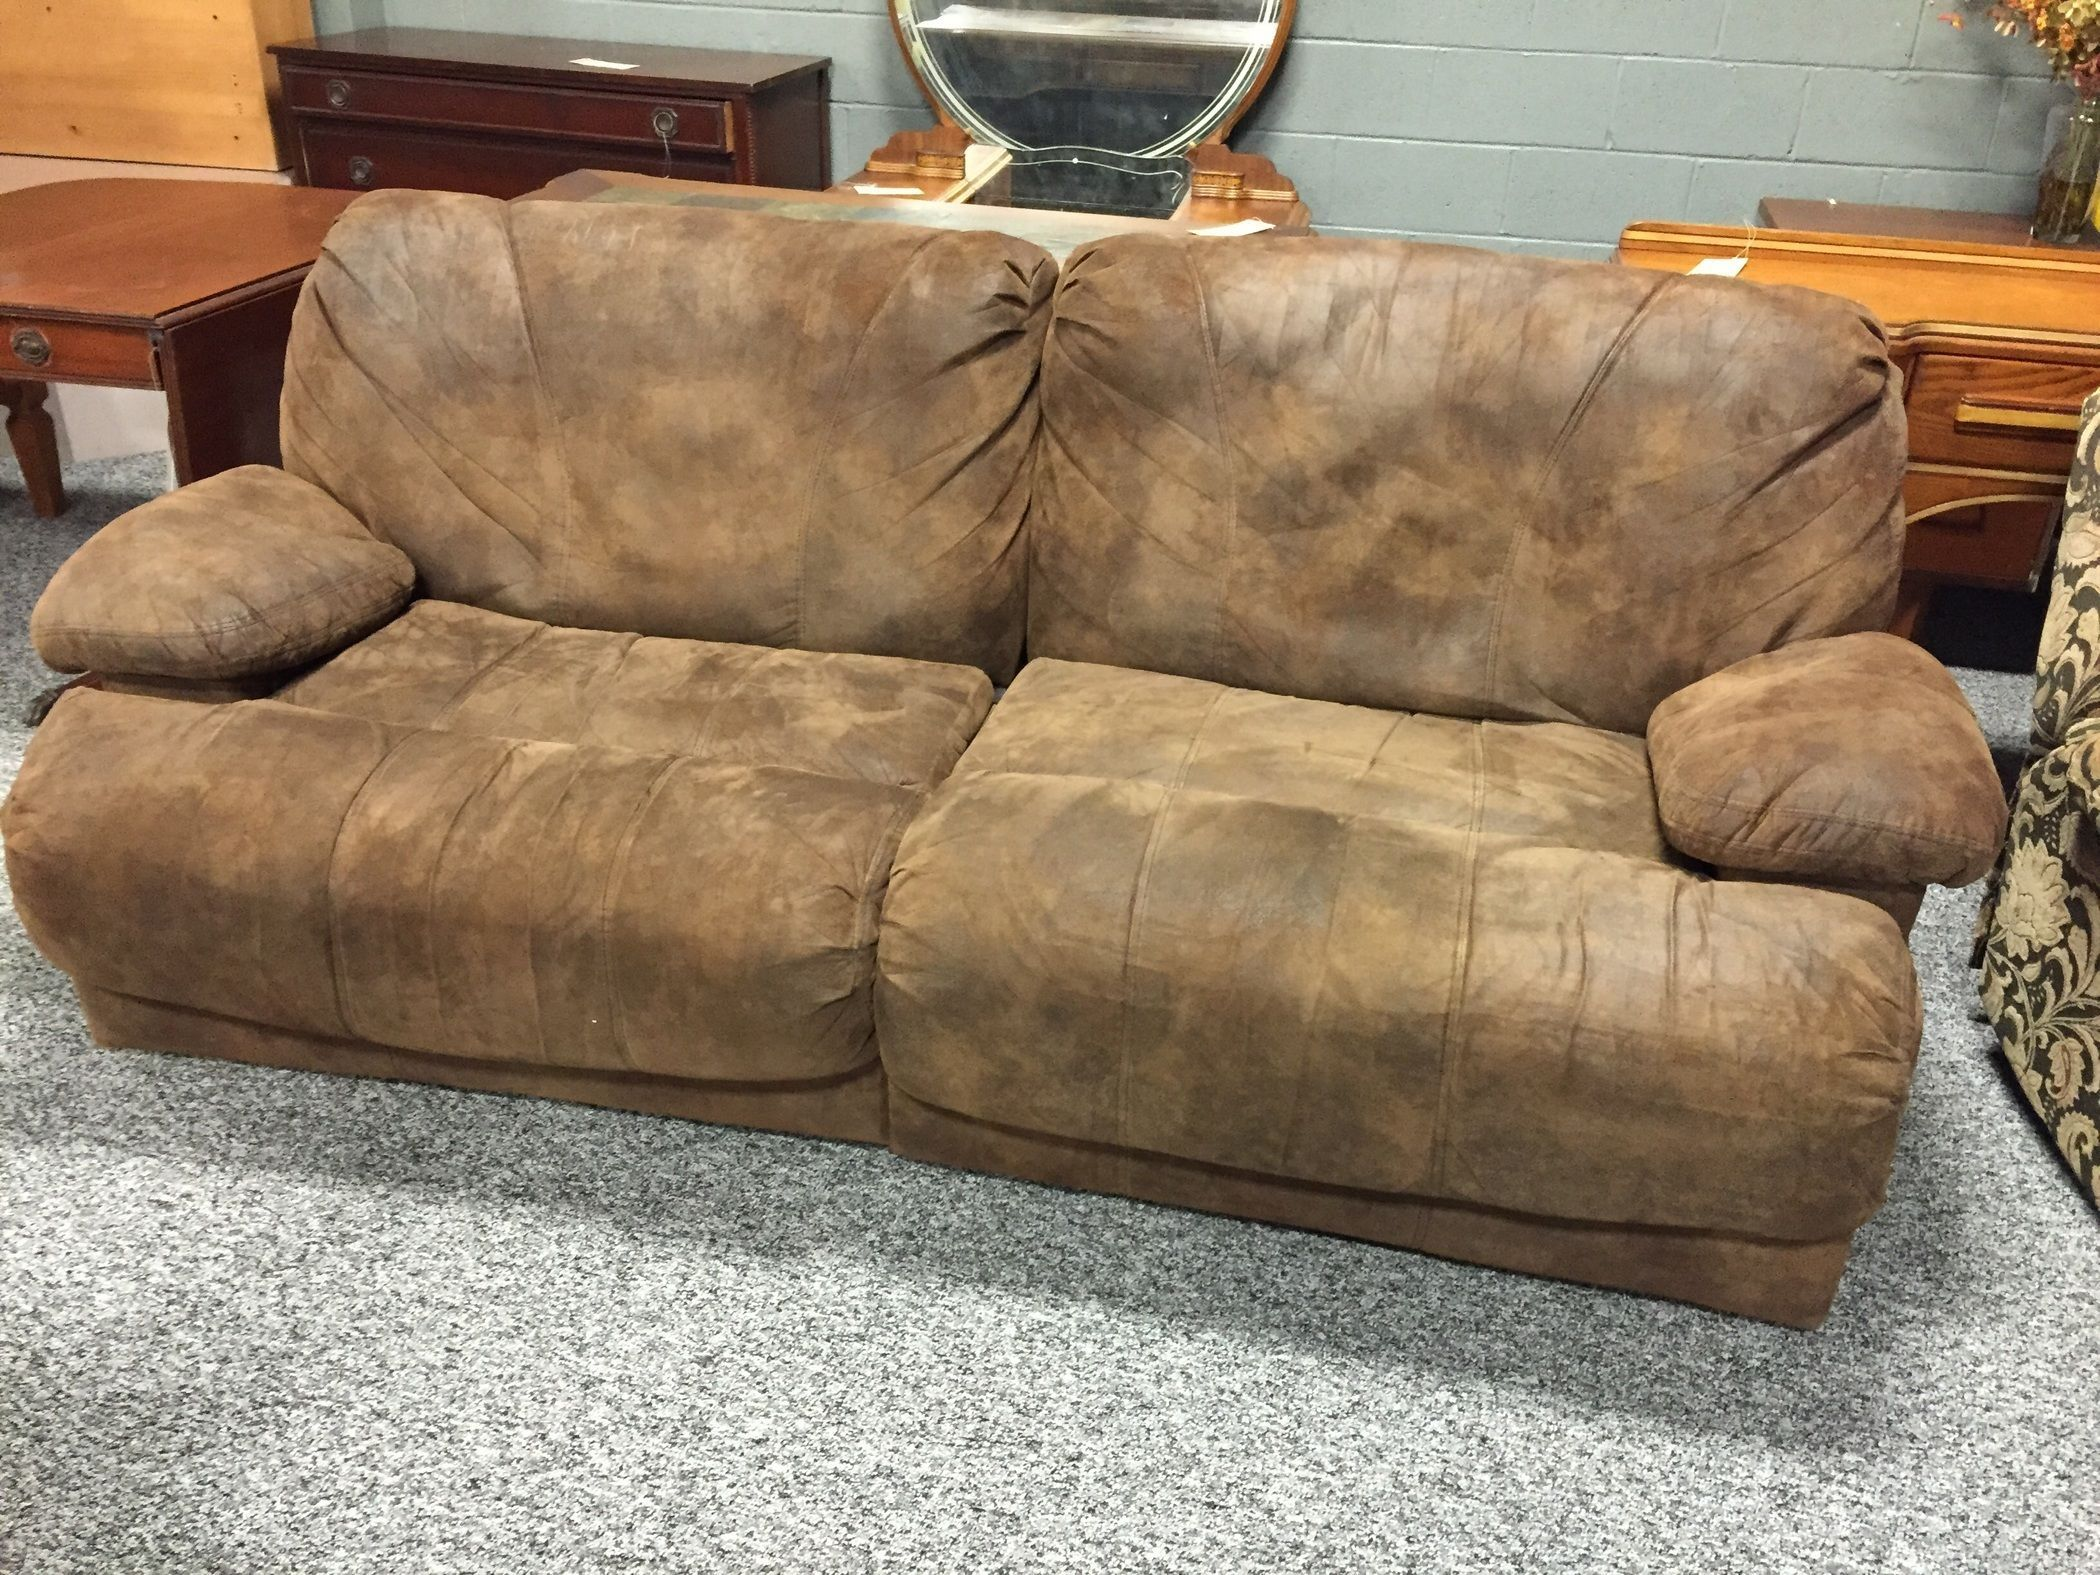 Reclining Sofa Allegheny Furniture Consignment Second Hand